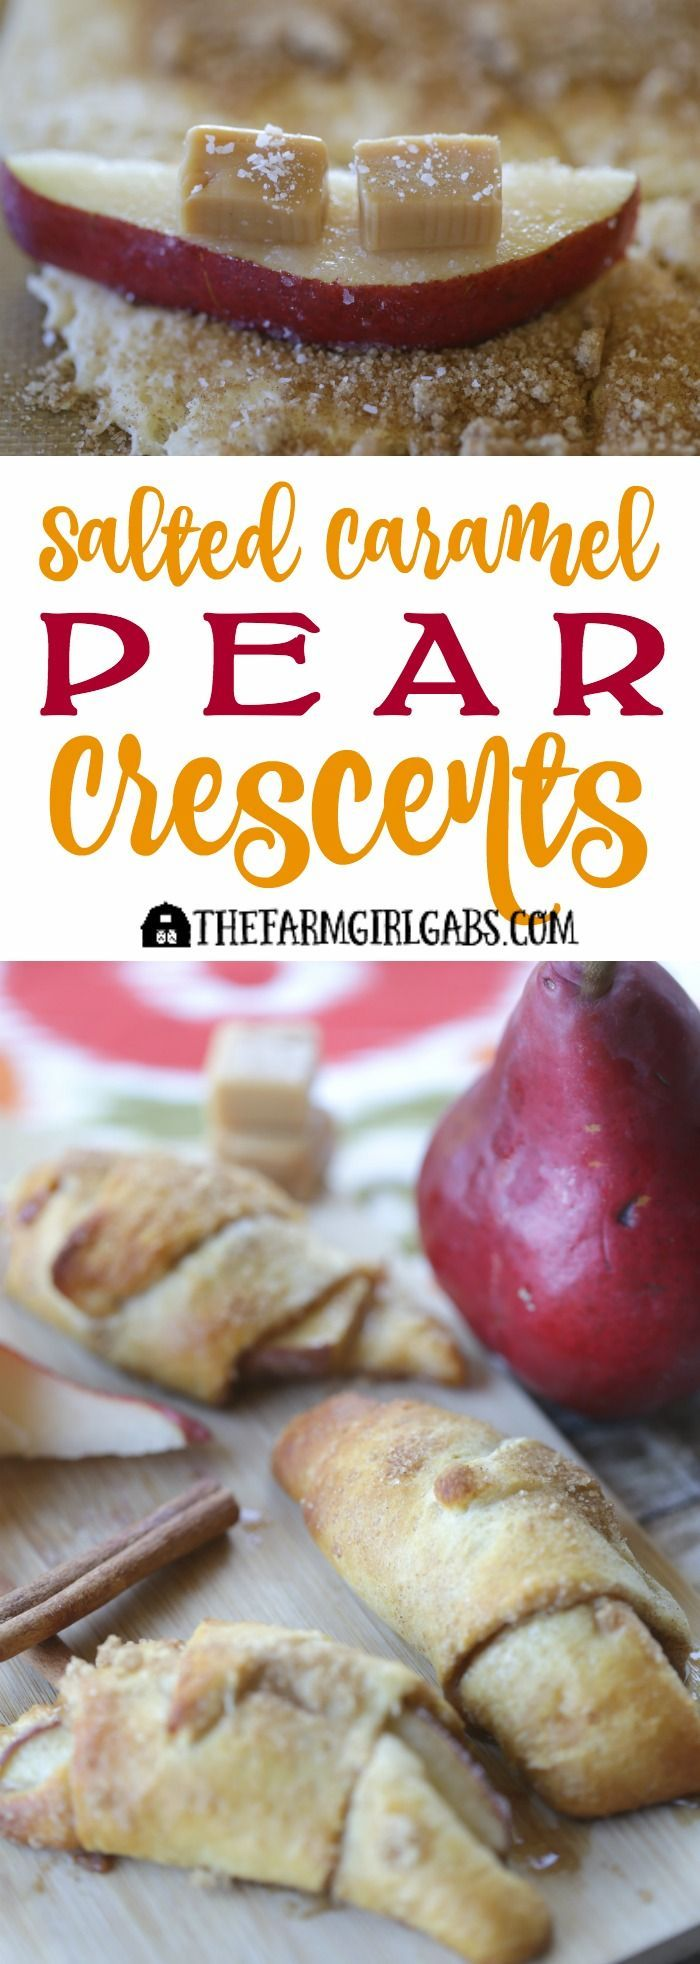 These Salted Caramel Pear Crescents, made with store-bought crescent rolls, are a perfect quick and easy fall recipe. This dessert only takes 10 minutes to prepare!